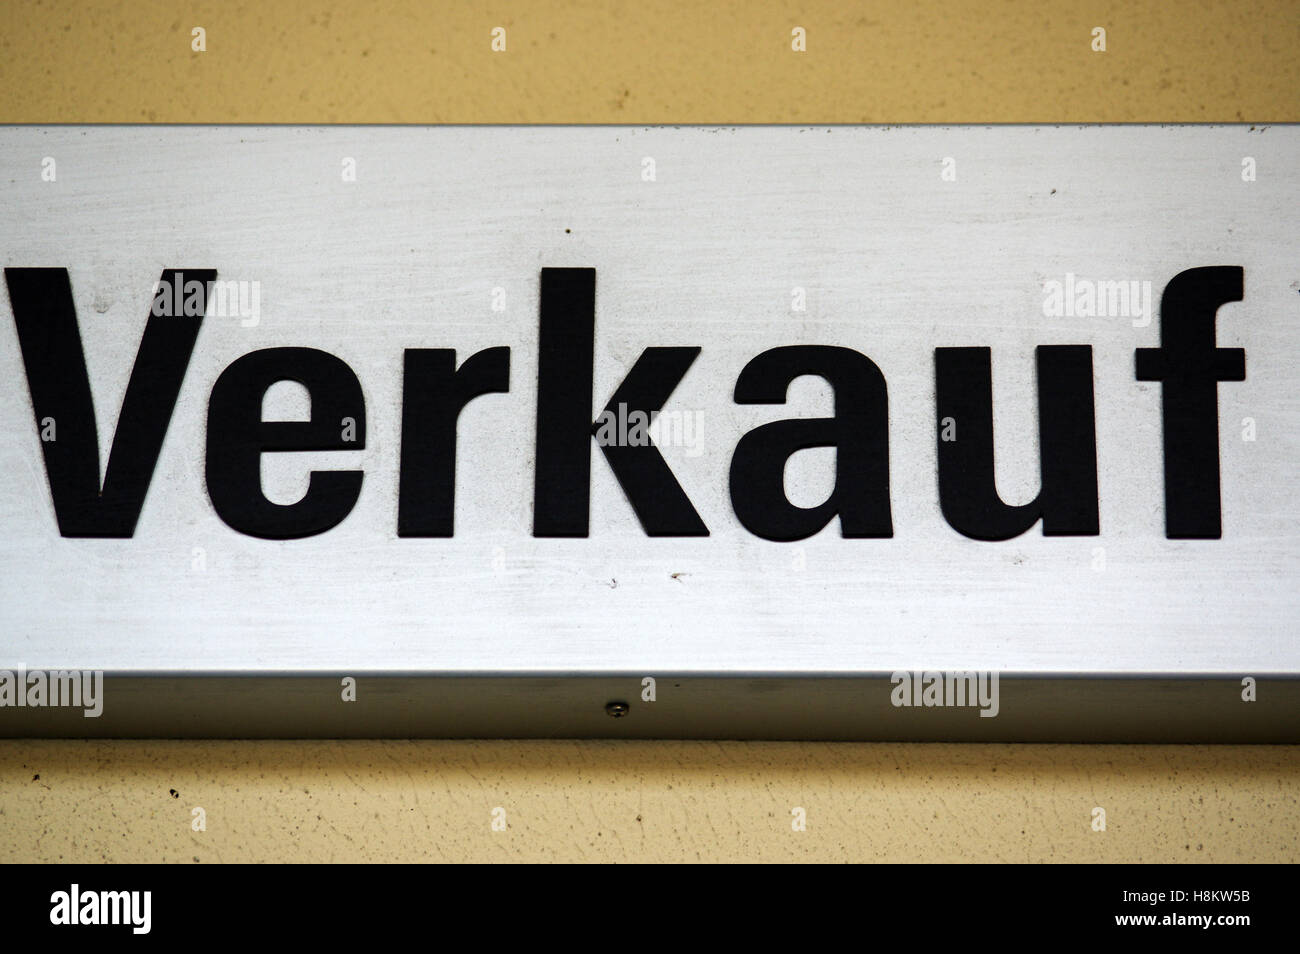 a sign or shield with - VERKAUF - in German, translation to English - SALE, closeup - Stock Image